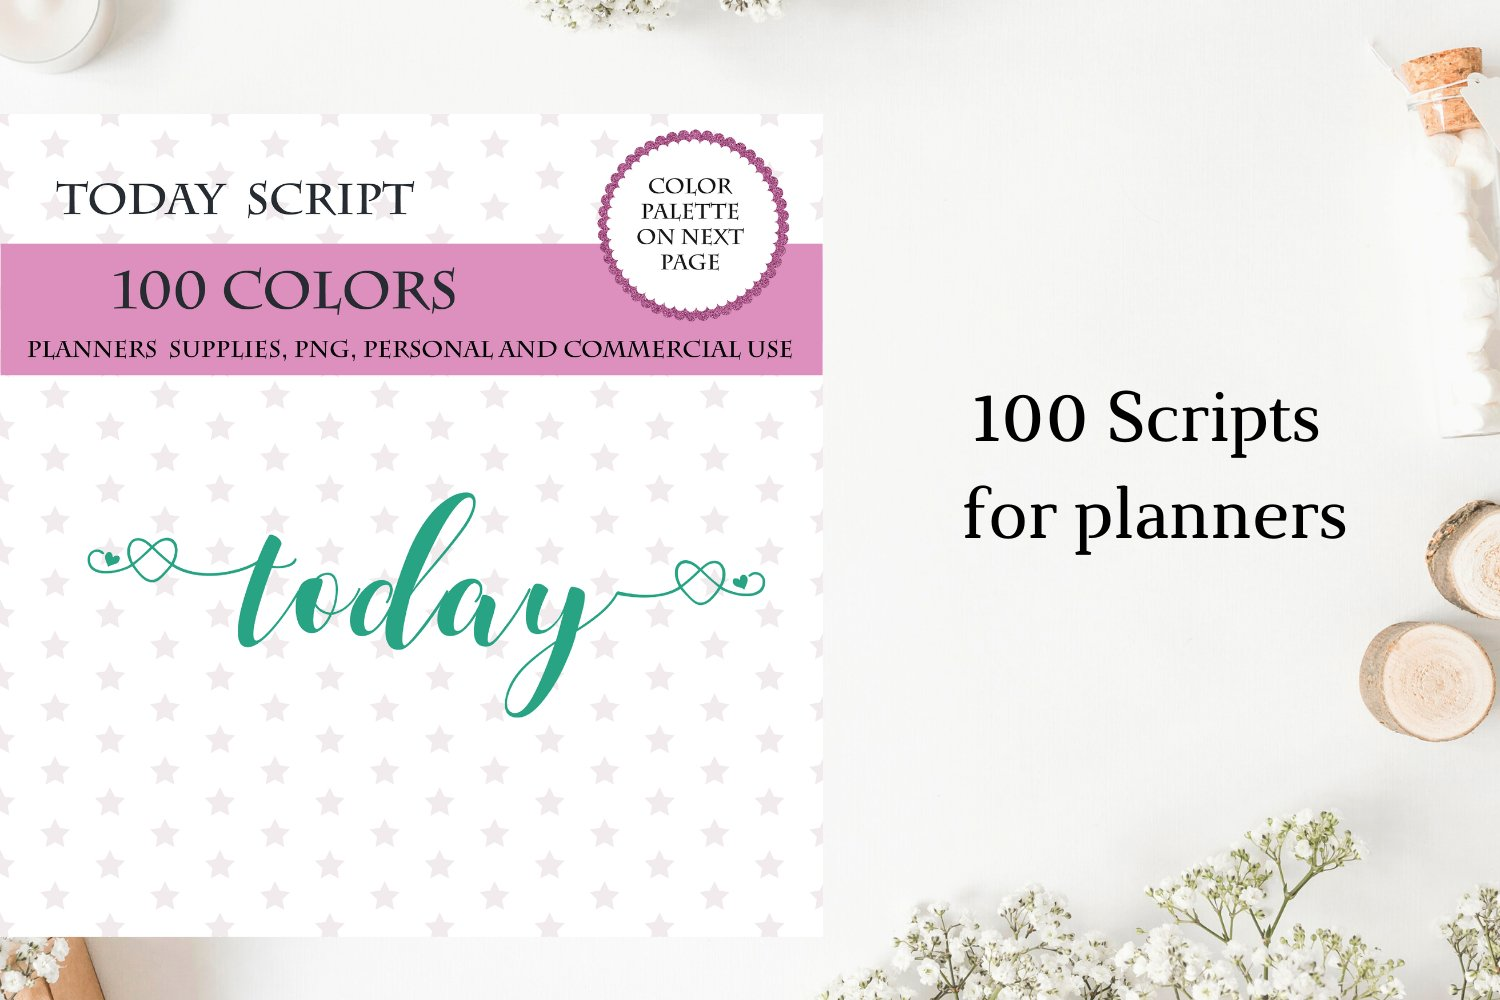 100 Today font clipart, Today sticker clipart, Today planner example image 2